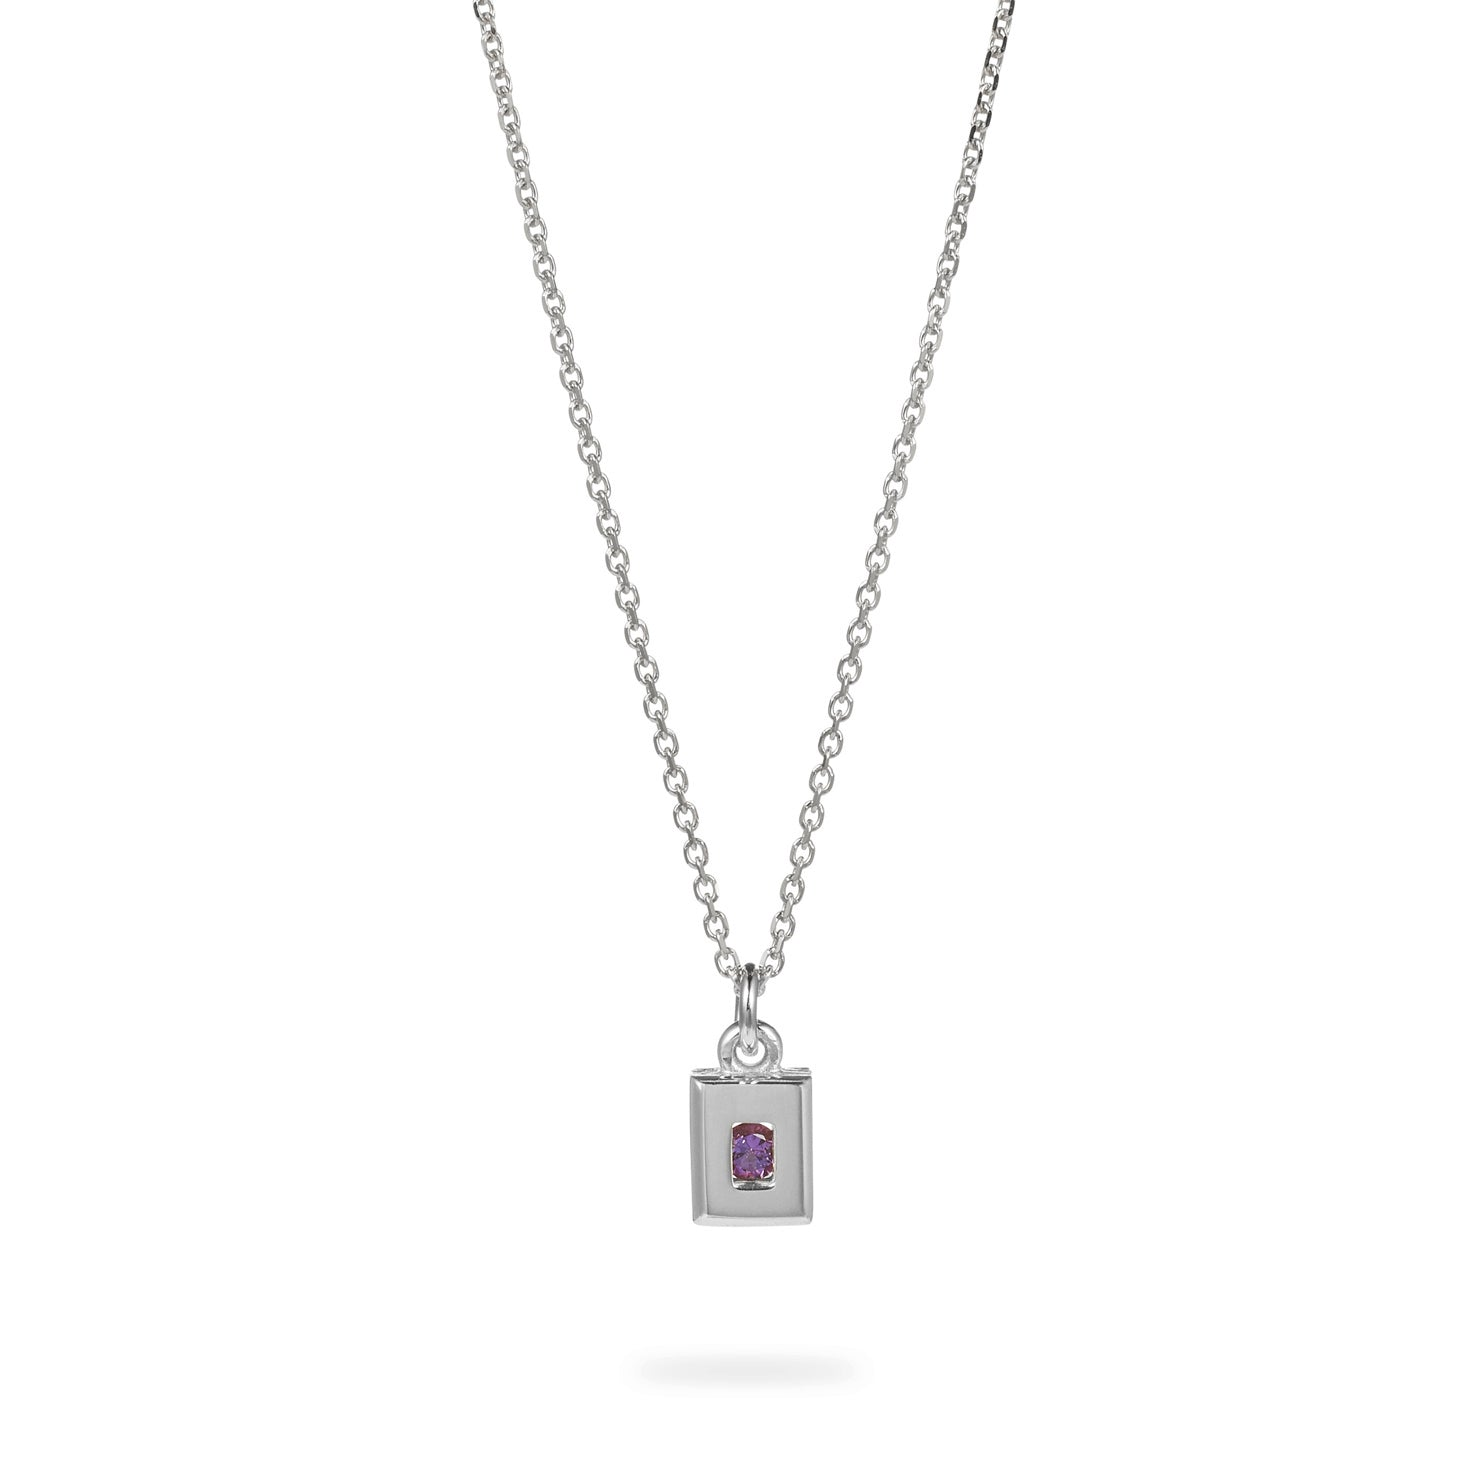 Luke Rose Jewellery silver amethyst necklace